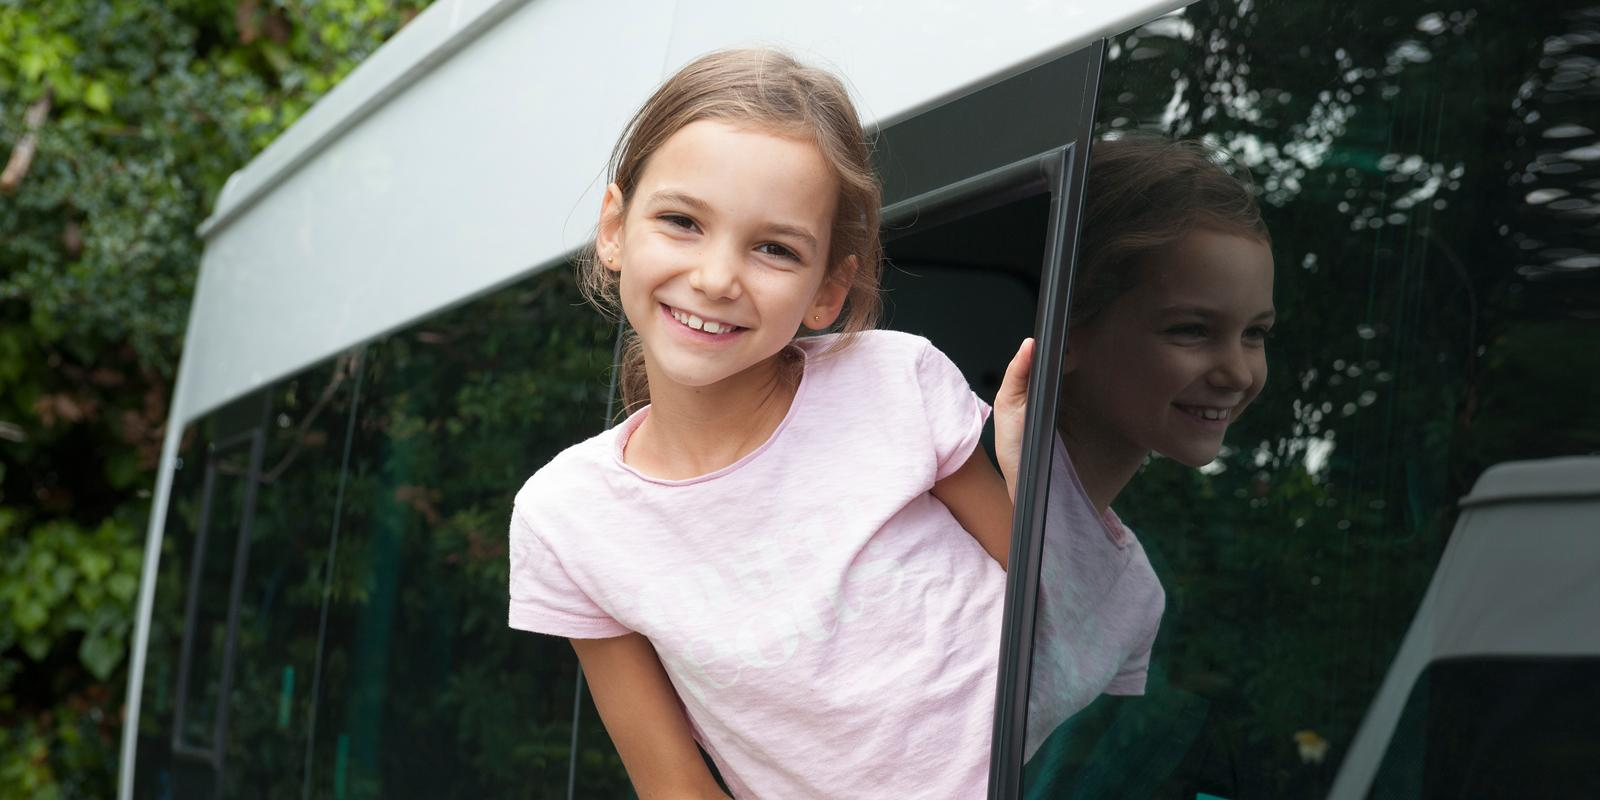 Student smiling whilst getting on a school bus